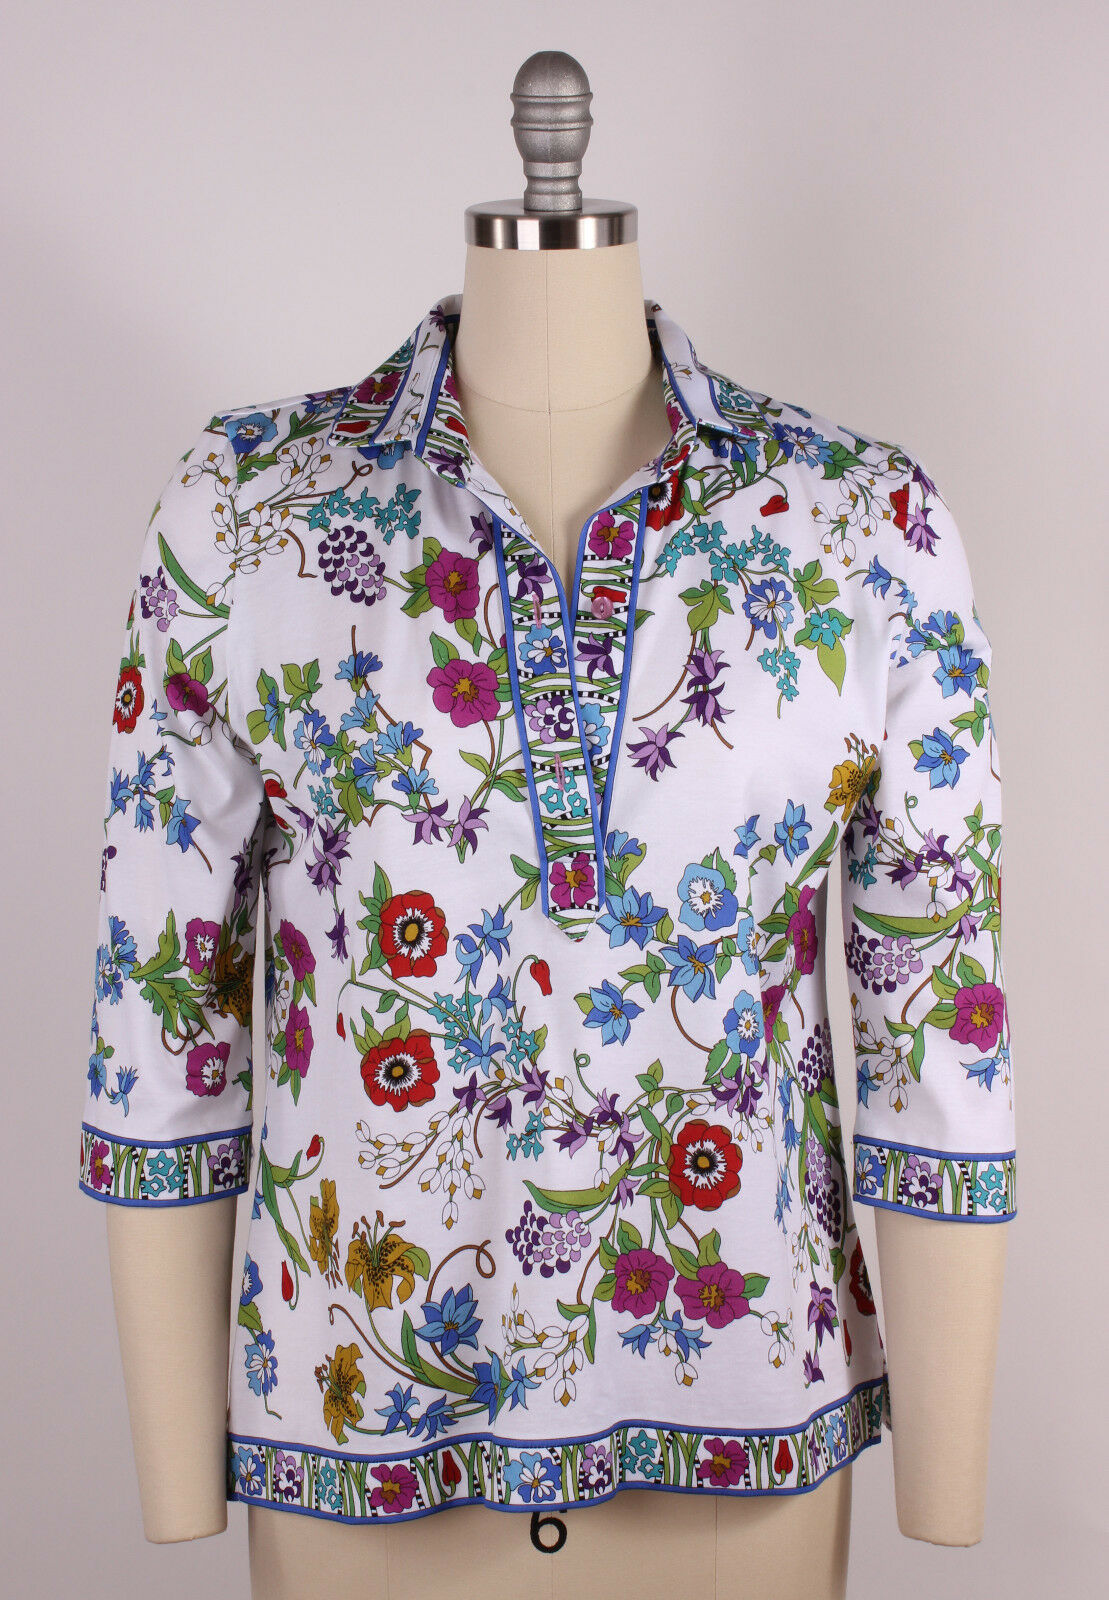 NWT Averardo Bessi Floral Print Top Blouse Made in  Small TS3916 358